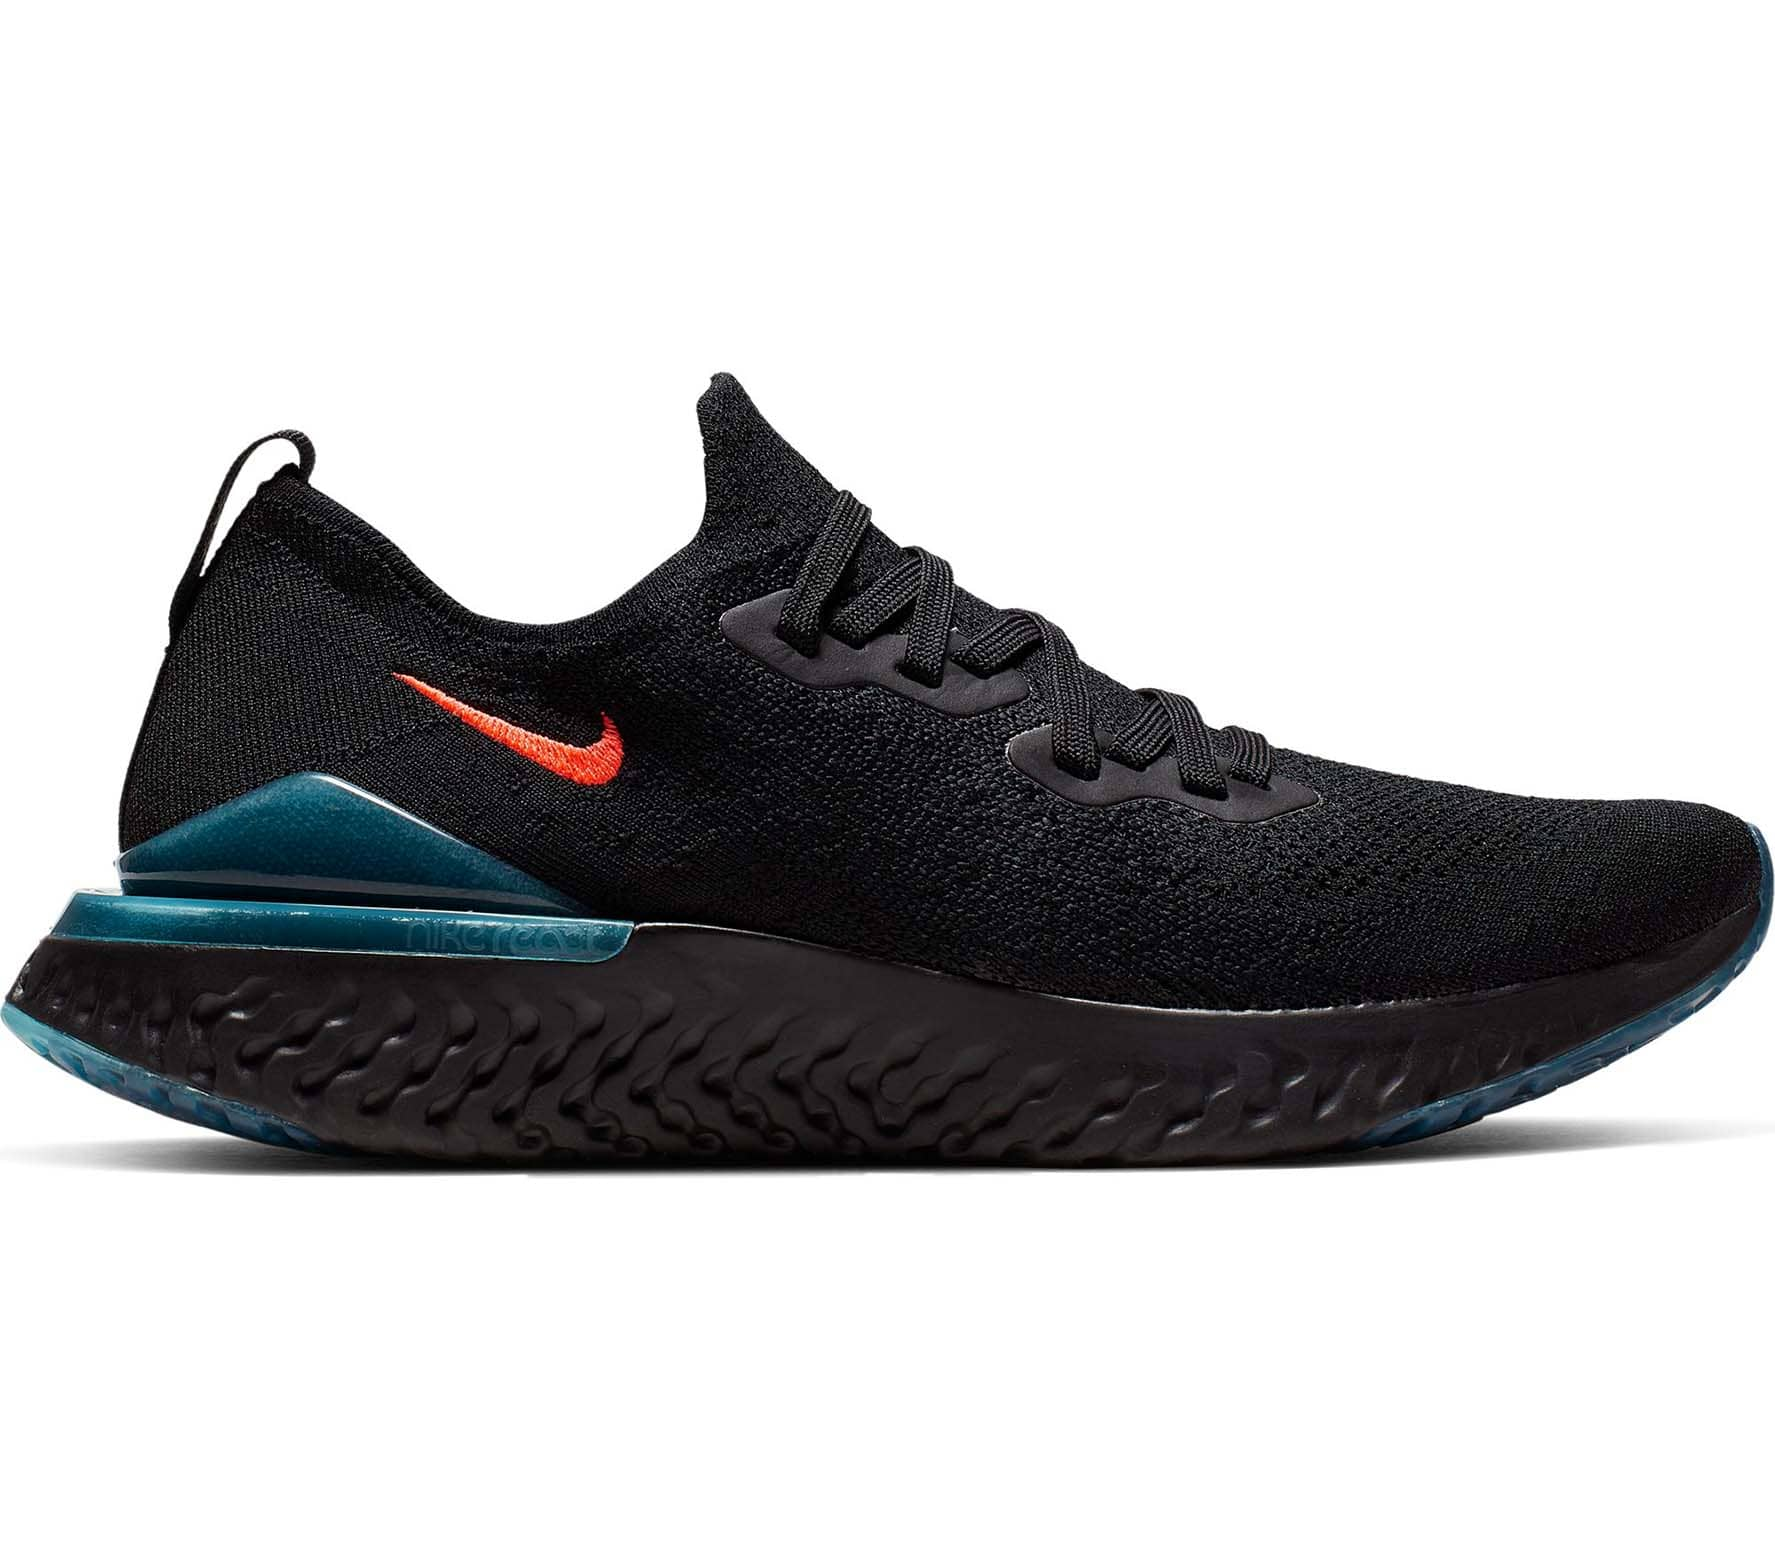 17f85a55a5c9 Nike - Epic React Flyknit 2 men s running shoes (black) - buy it at ...